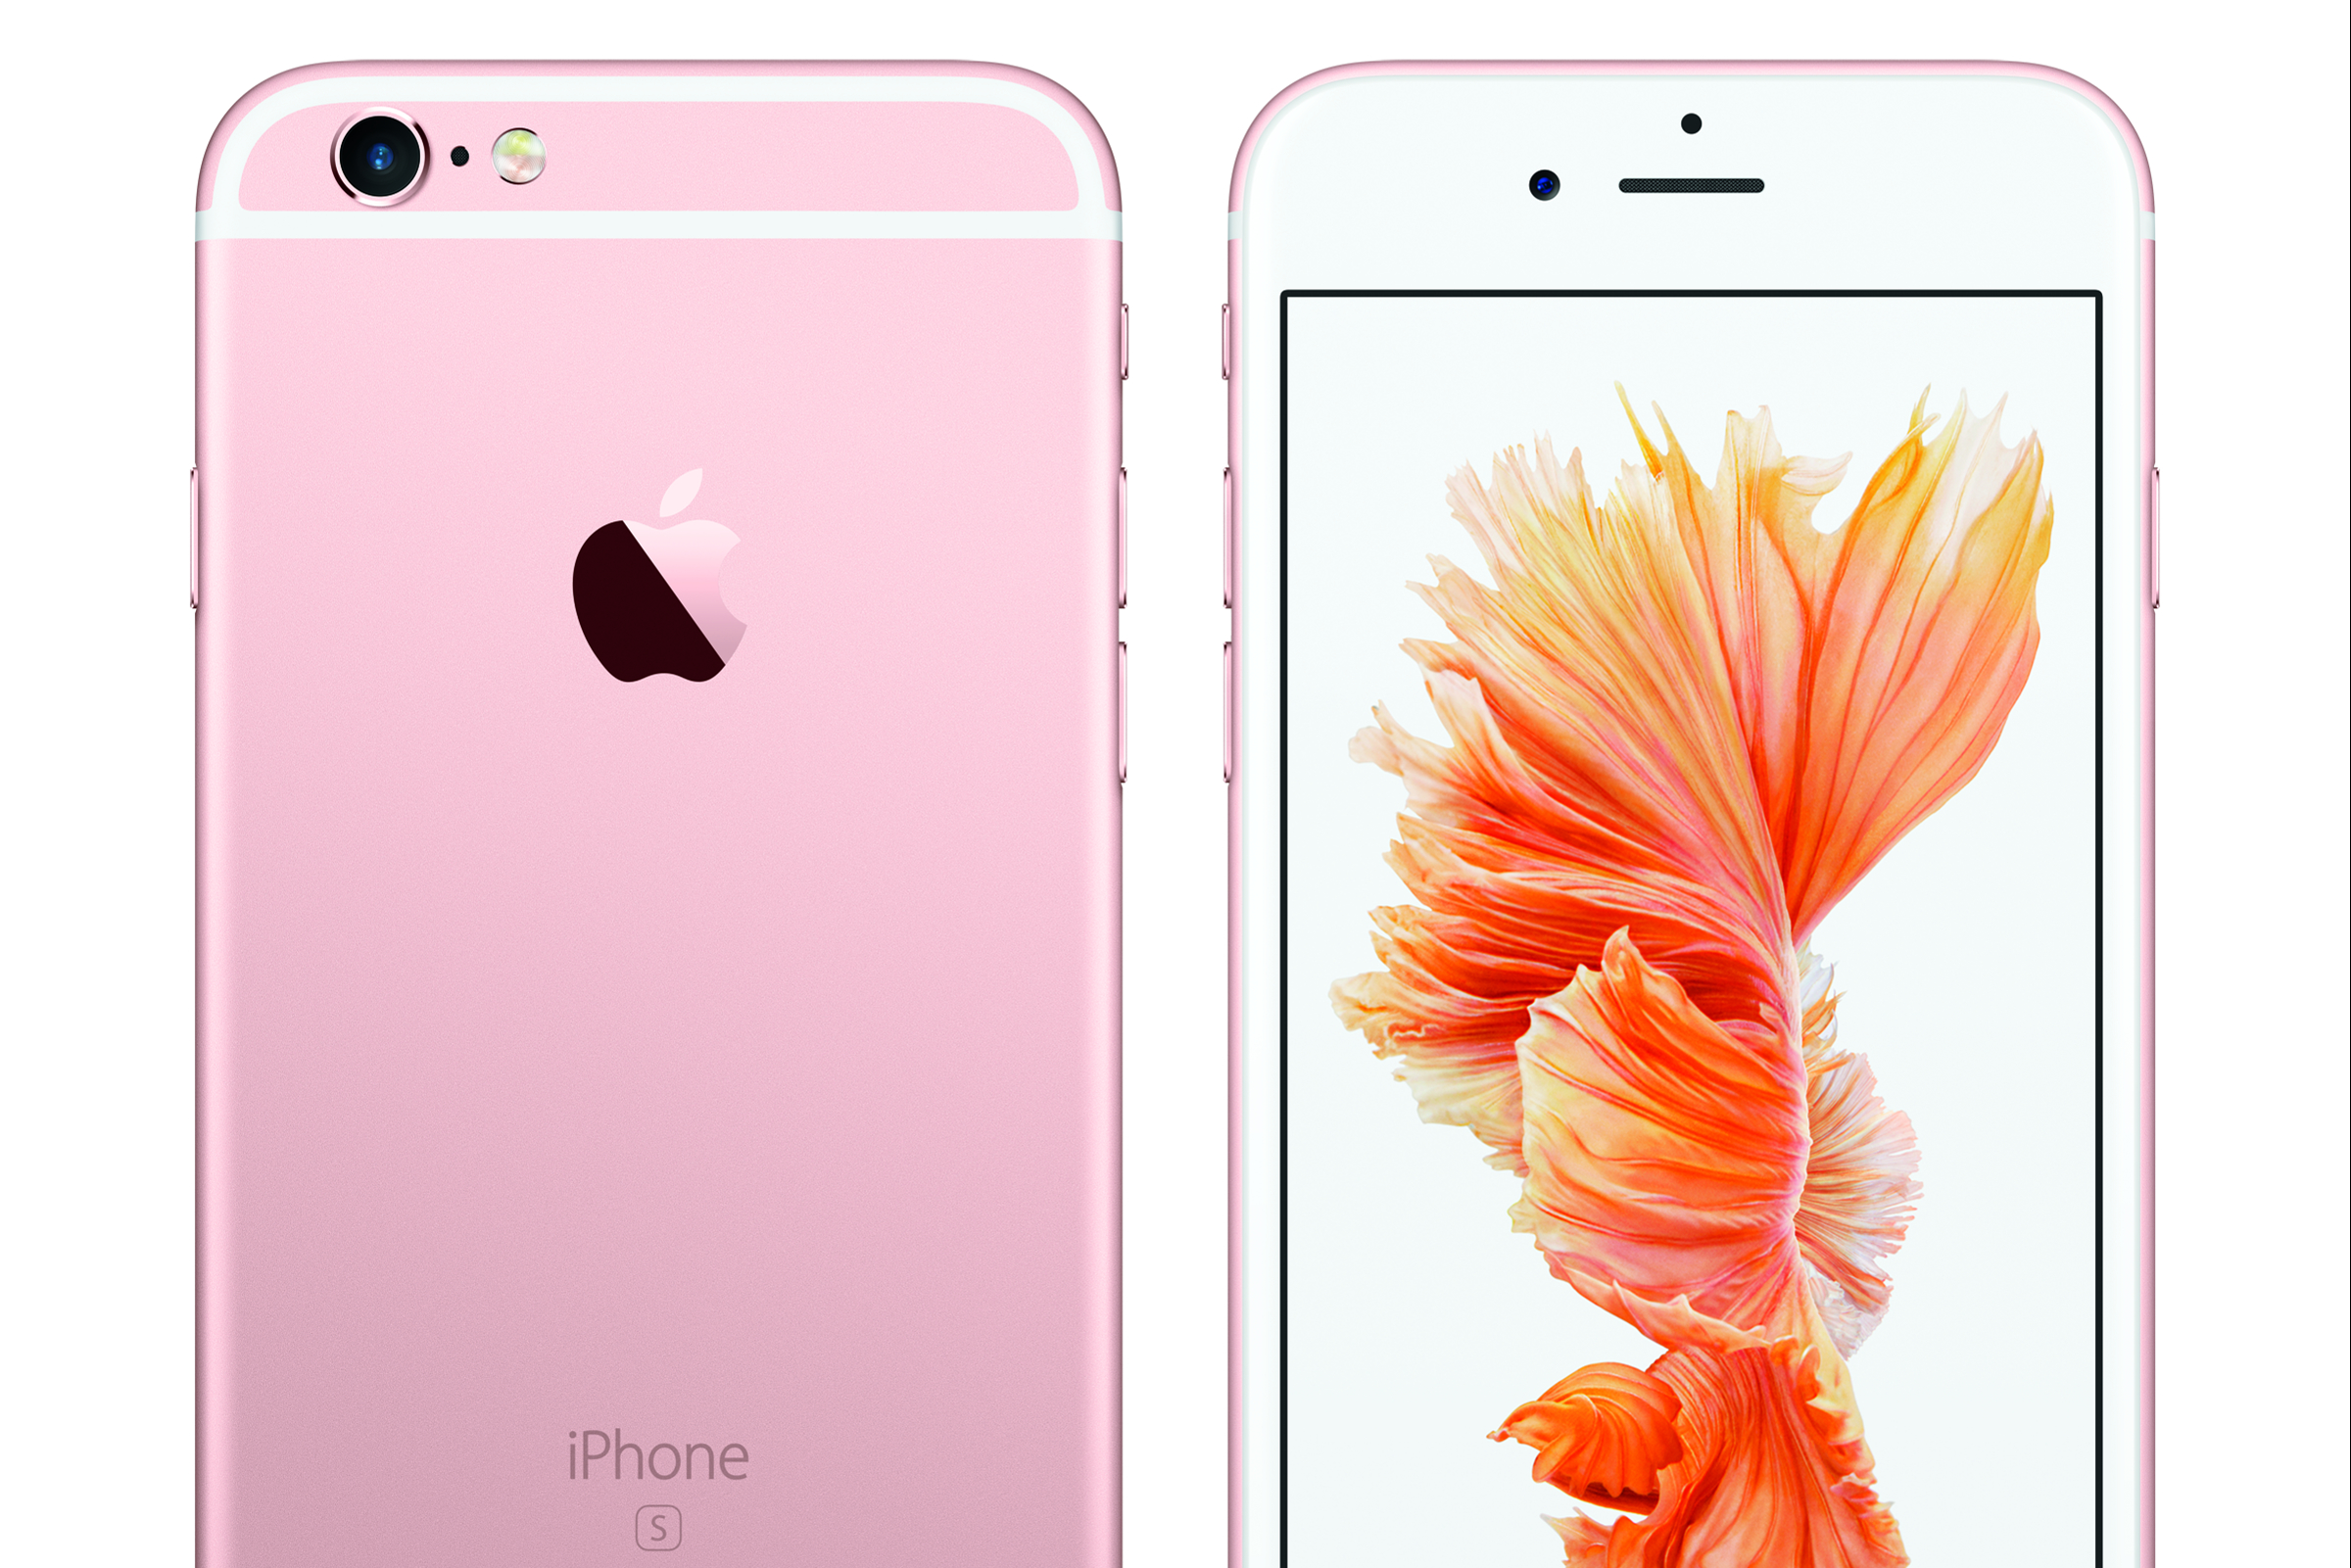 Front and rear cameras of Apple's iPhone 6S